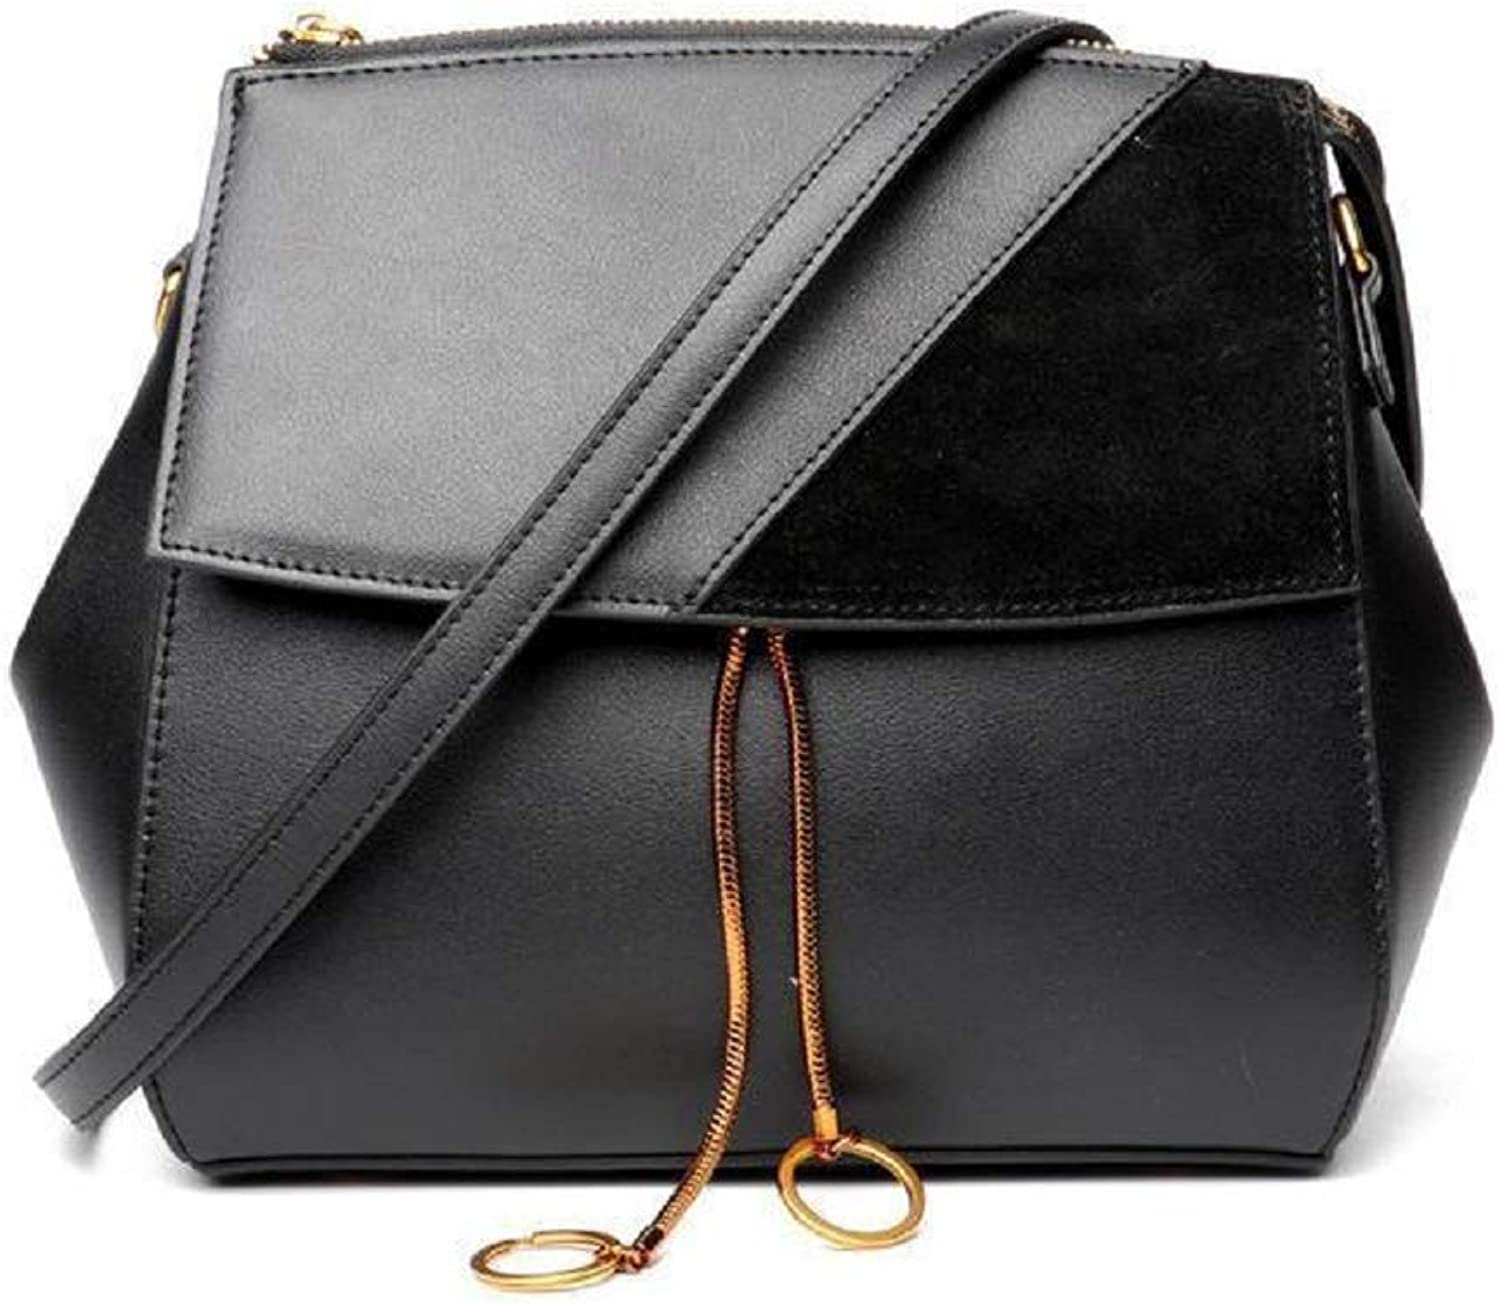 BagPrime Festive Geometric Sling Bag Handbags Shoulder & Crossbody Bags